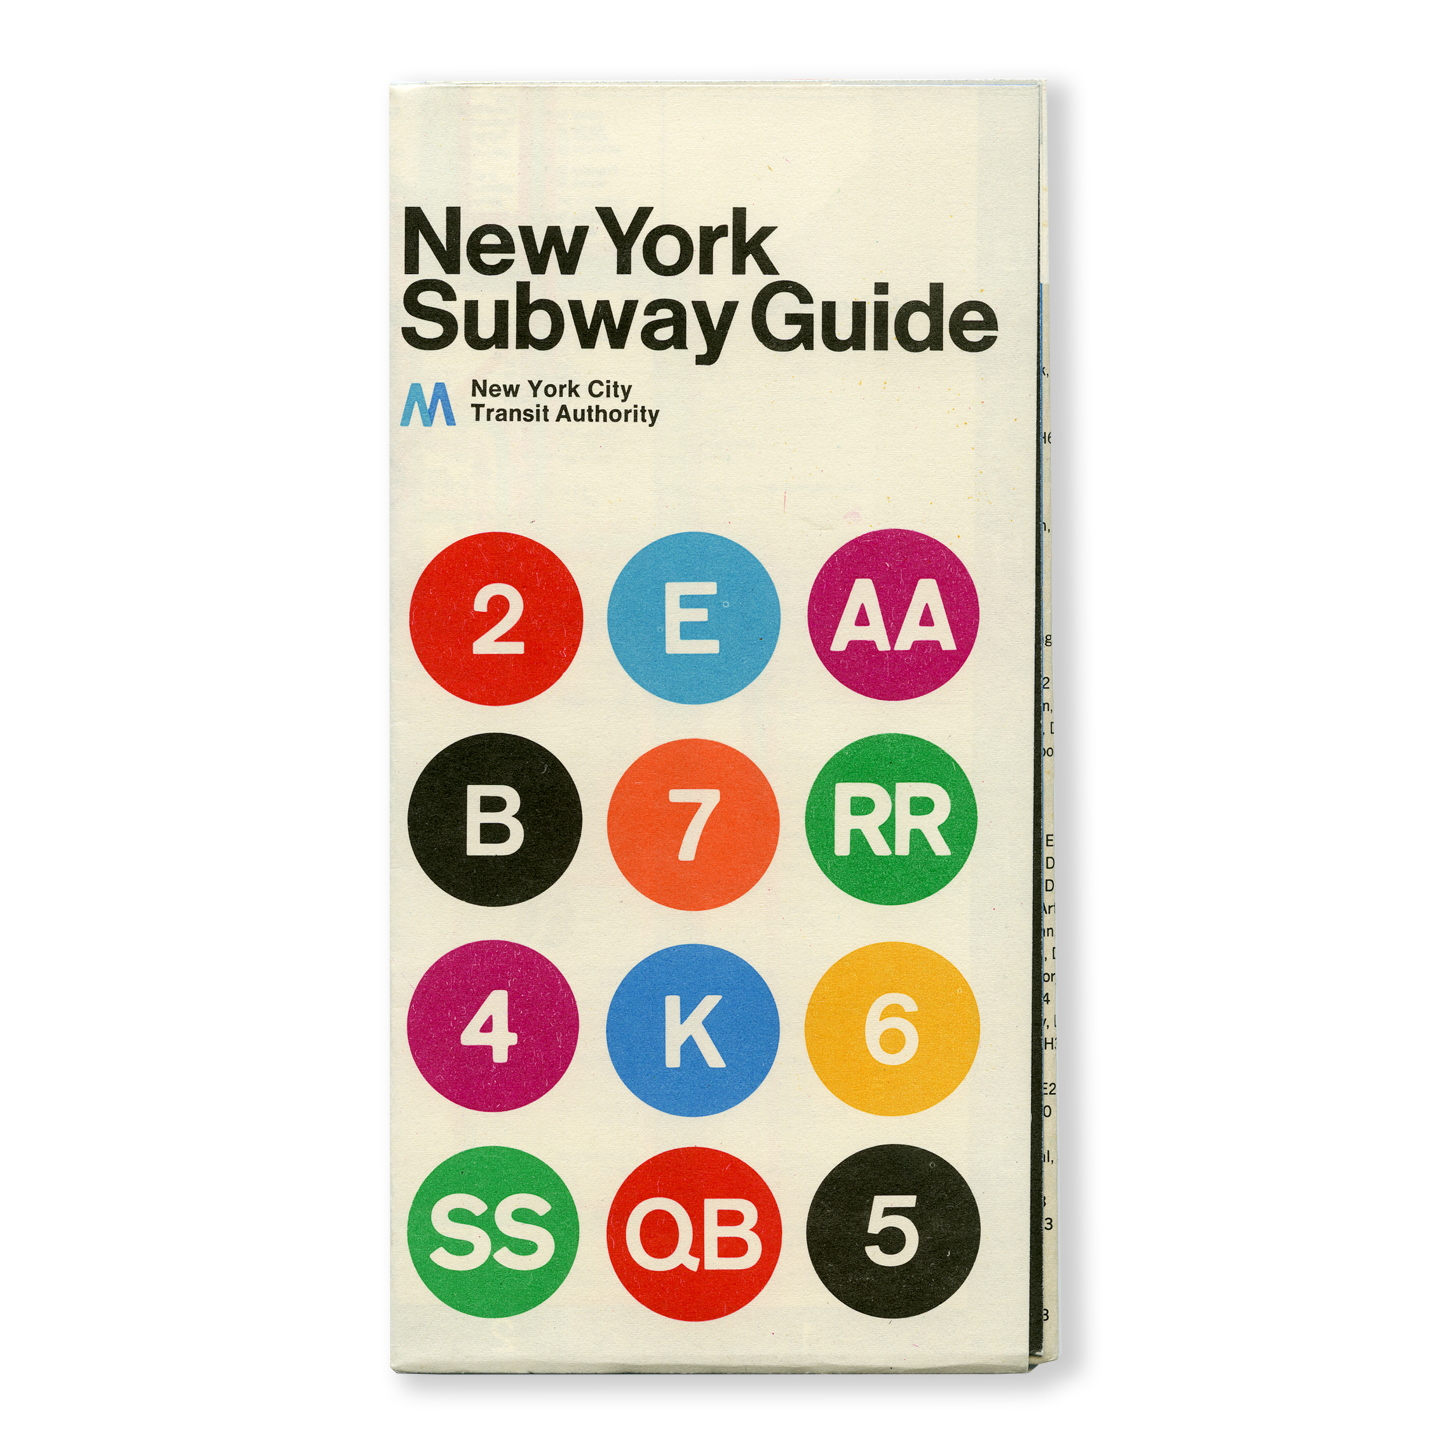 the_nycta_project_massimo_vignelli_1972_new_york_subway_map_mta.jpg